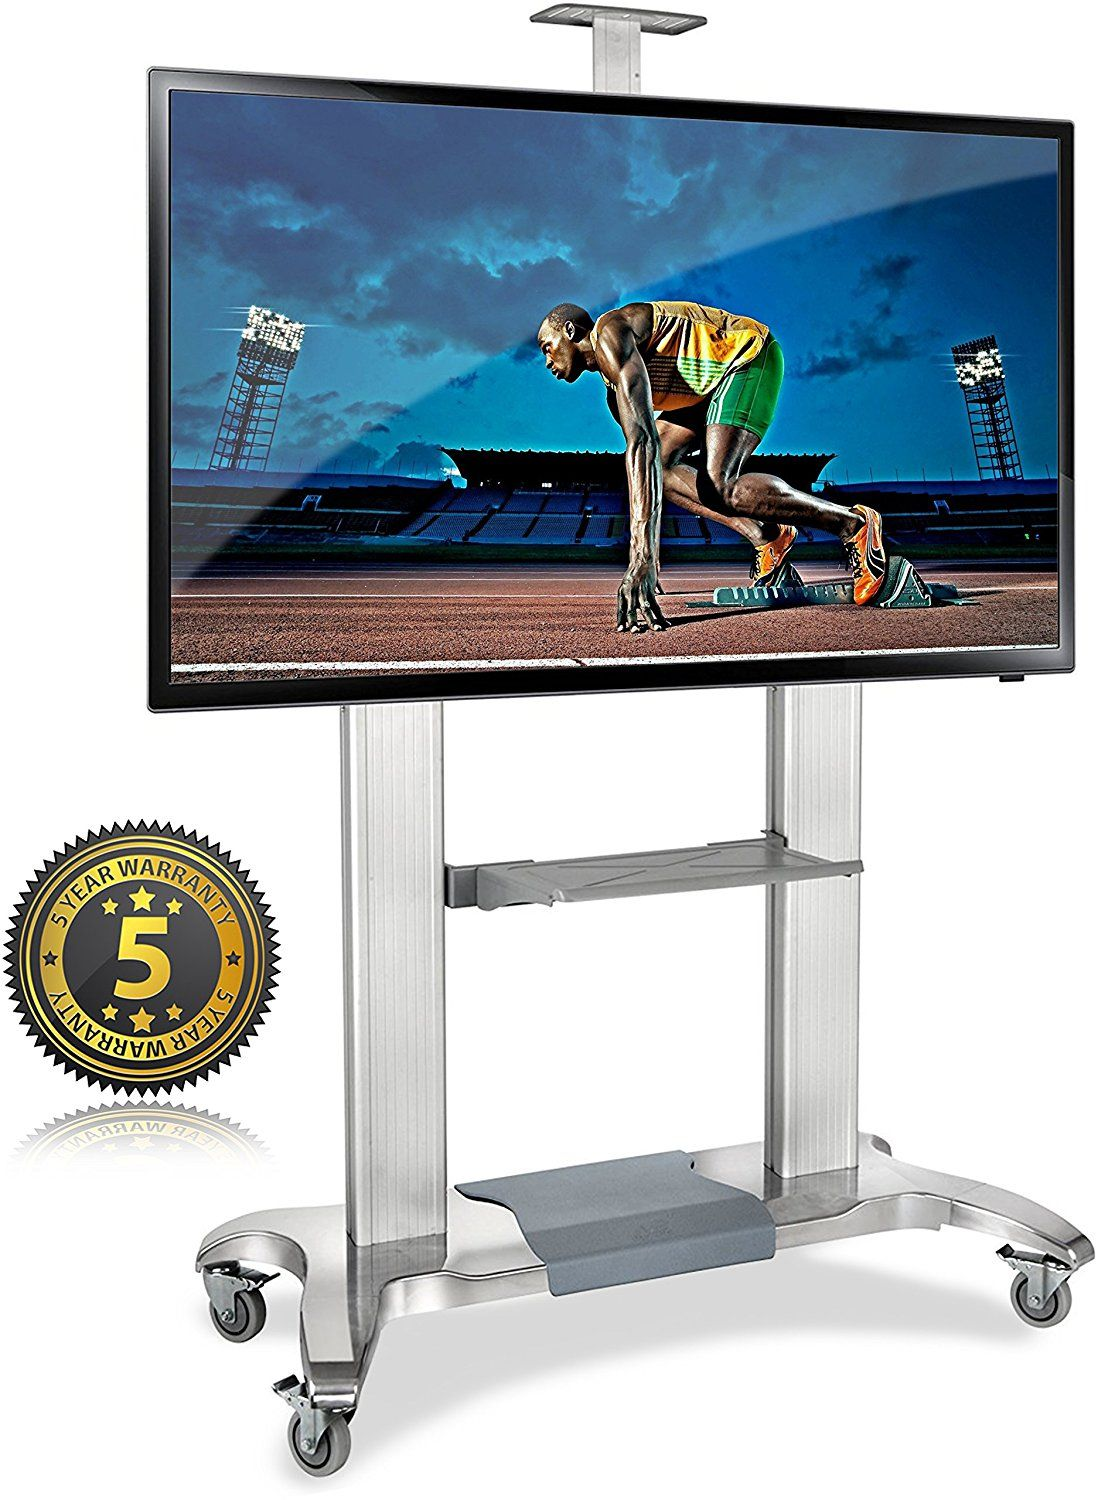 North Bayou Tv Cart Tv Stand With Mount For 60 100 Inch Flat Panel Screens Led Lcd Oled Plasma Displays Up To 300 Lbs Tv Stand Tv Cart Tv Stand With Mount 60 tv stand with mount